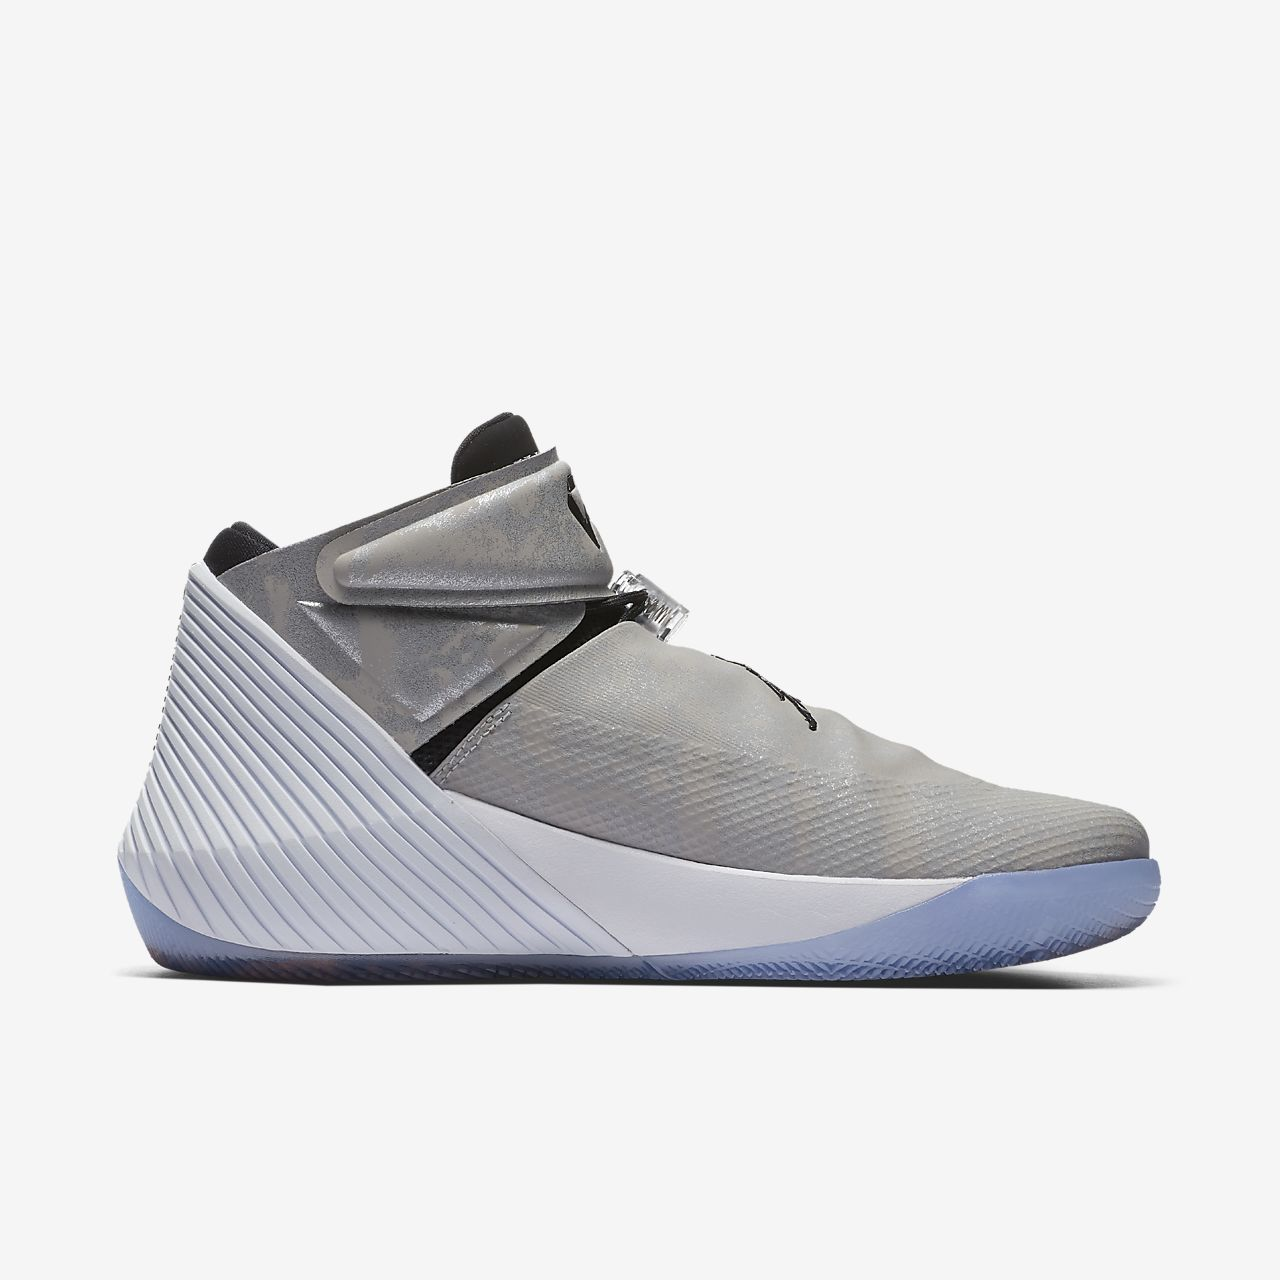 jordan zero.1 shoes nz